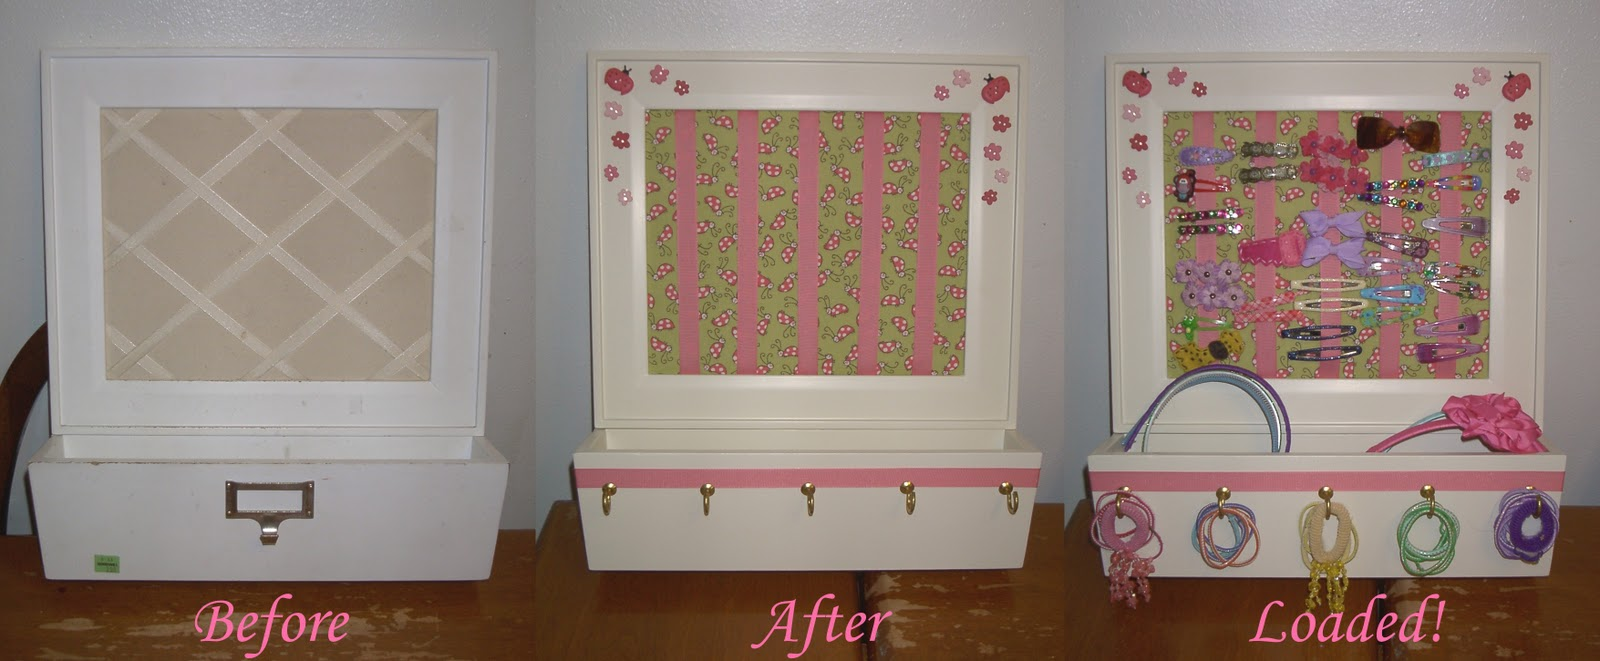 Angie S Whim Upcycle Project Organizer For Hair Accessories